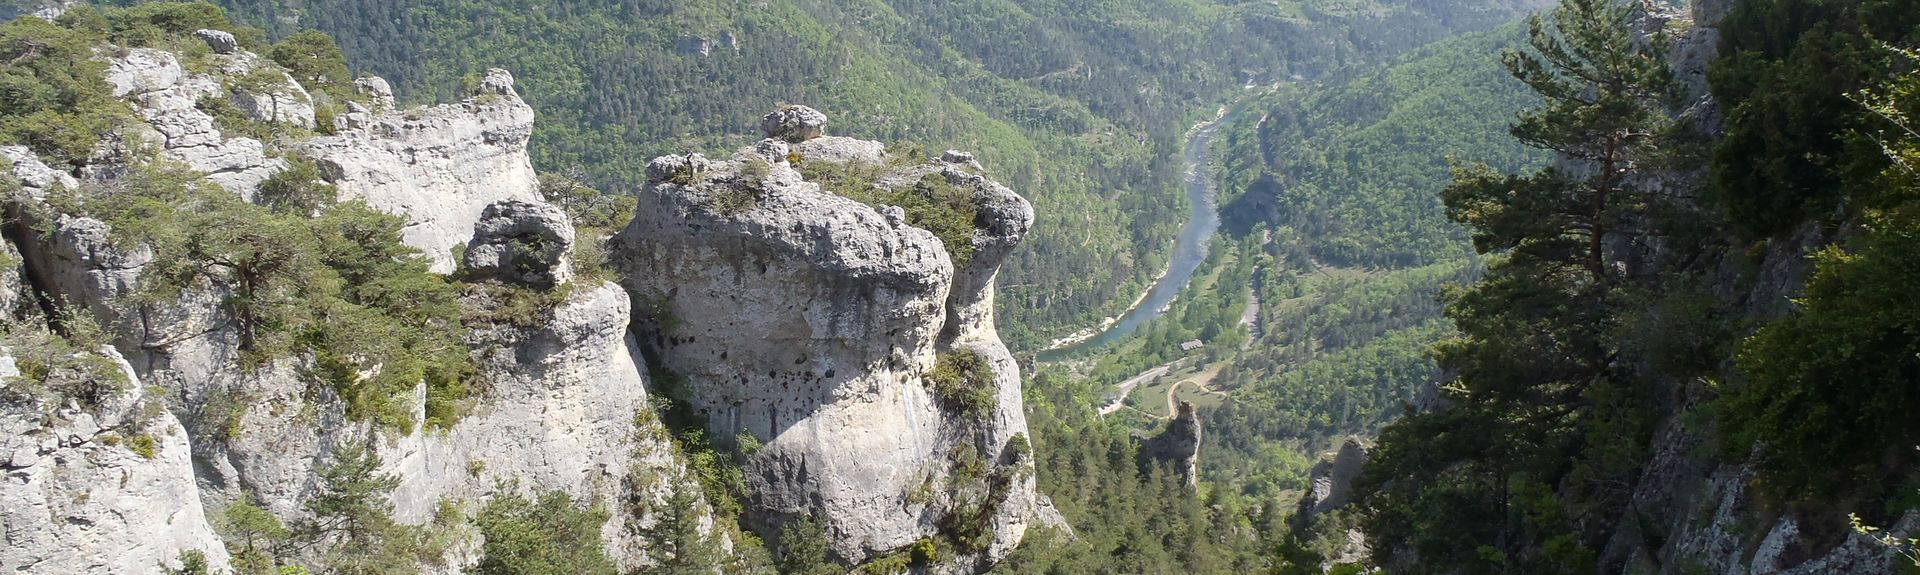 Massegros Causses Gorges, Lozere, France